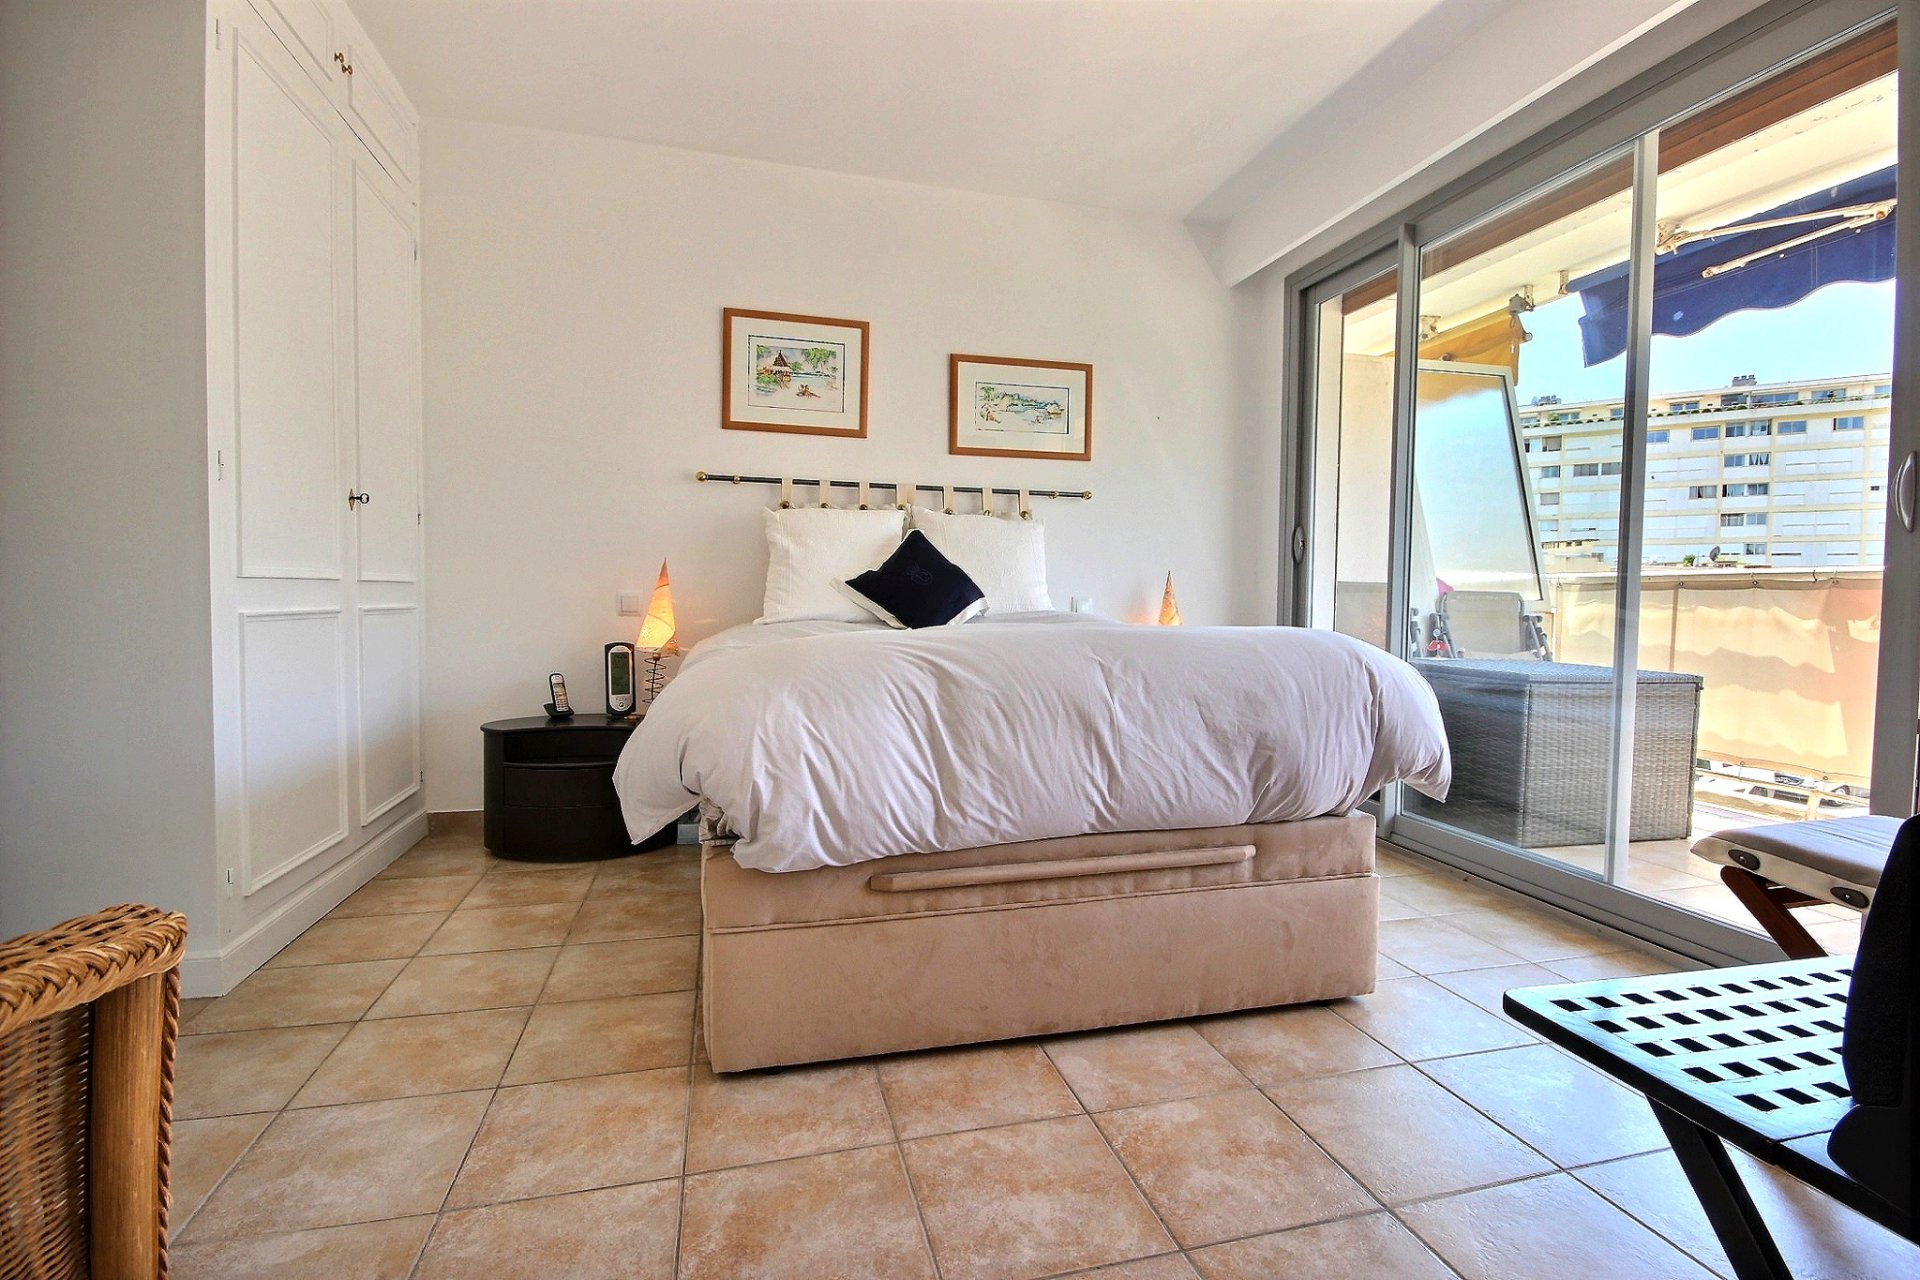 property for sale in cannes palm beach with terrace bedroom